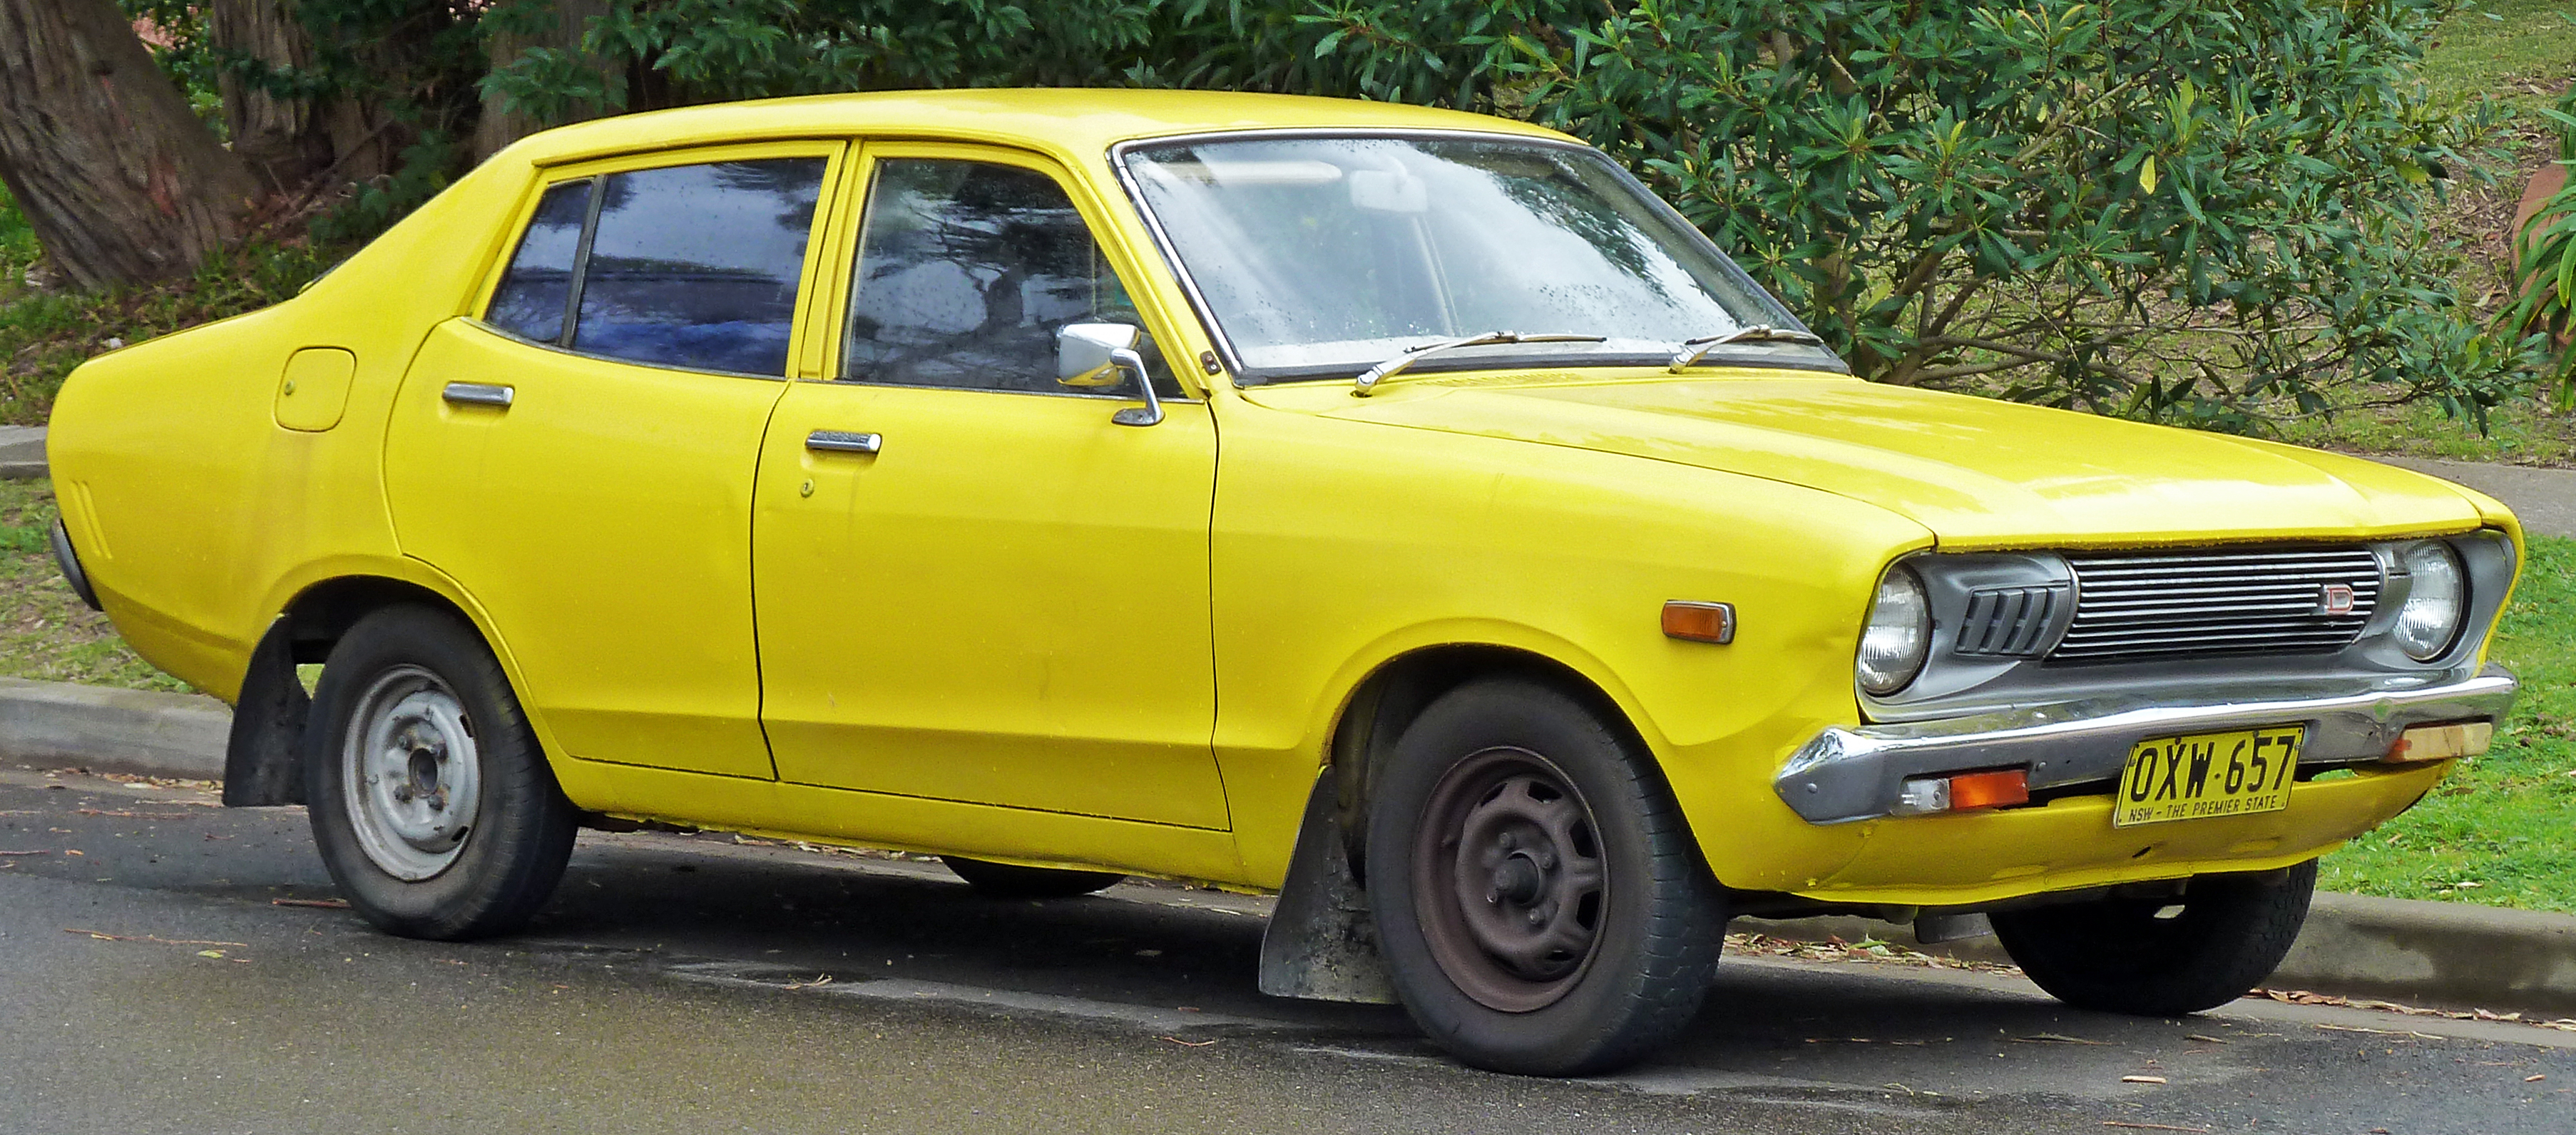 TopWorldAuto >> Photos of Datsun 120Y - photo galleries